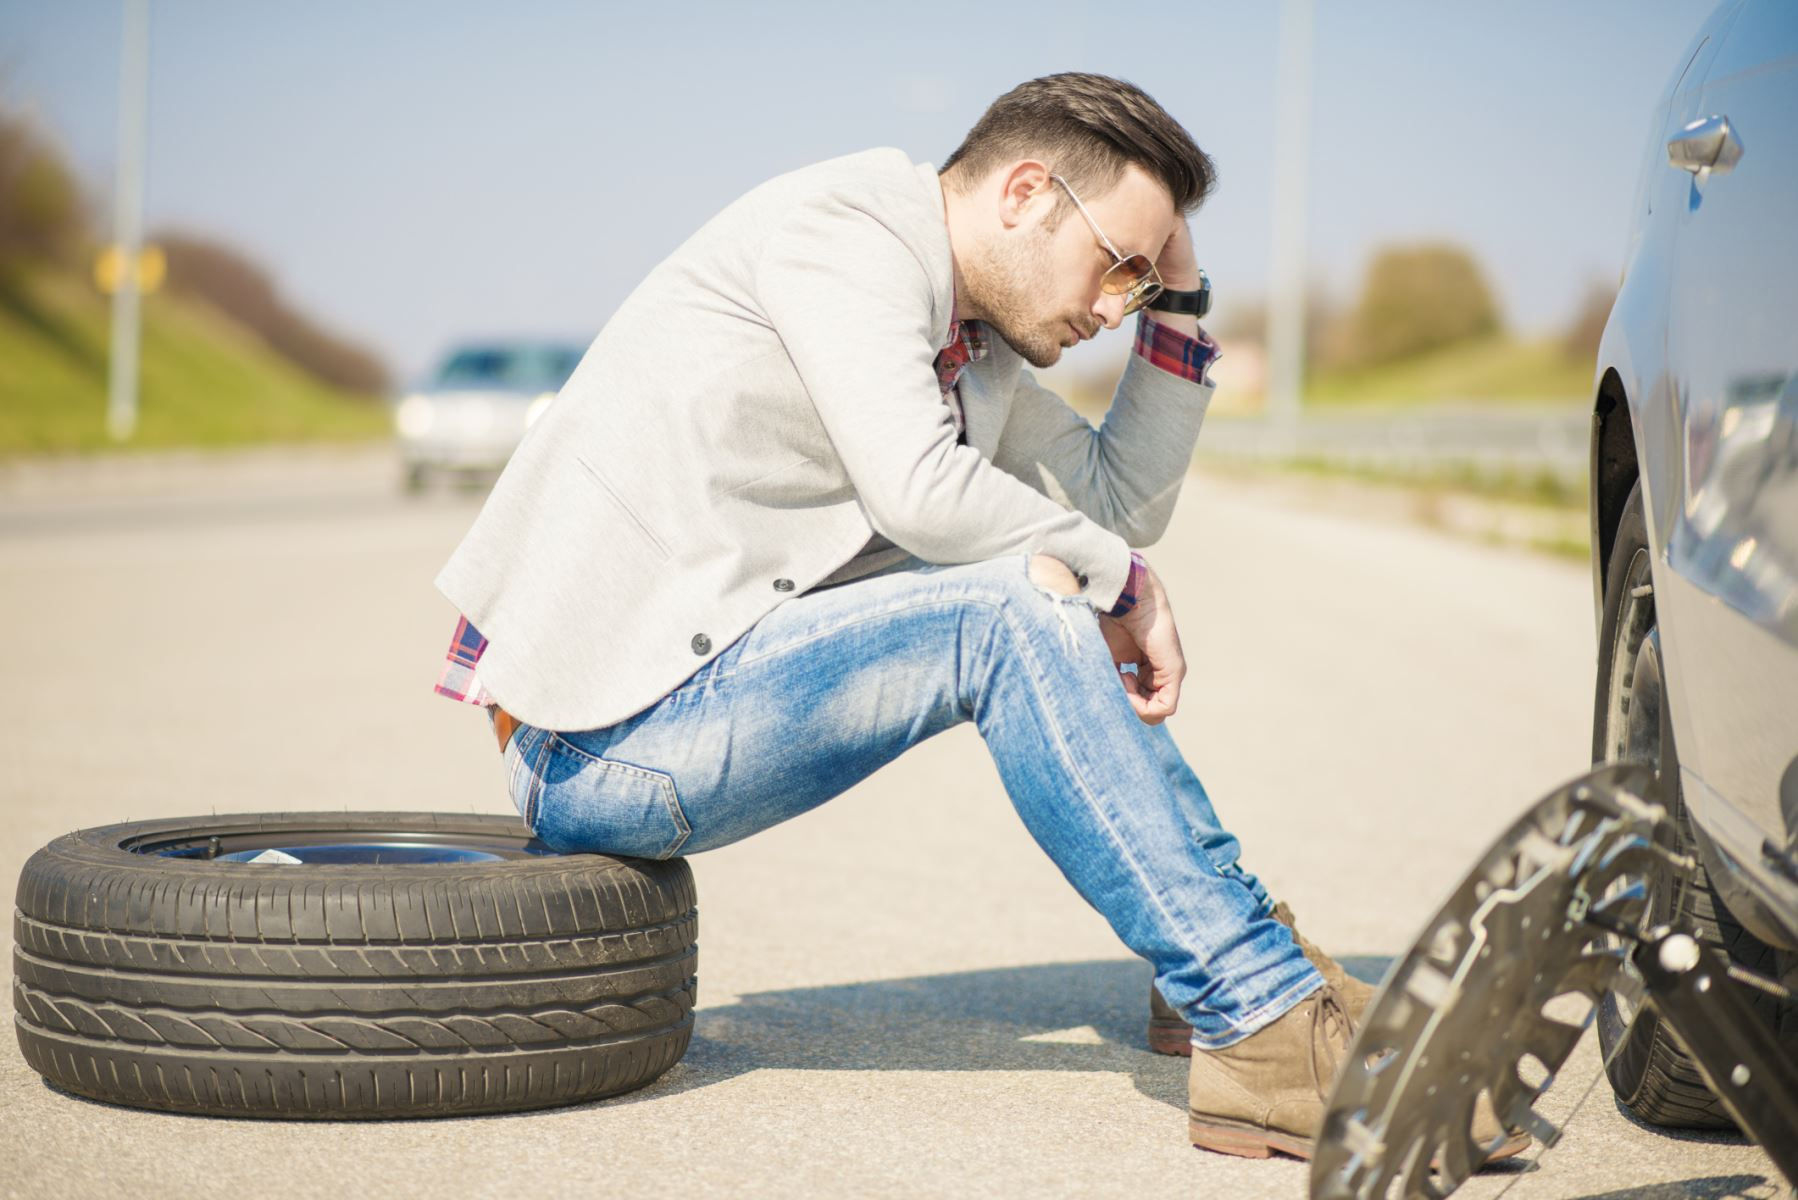 Check your tires before any road trip!